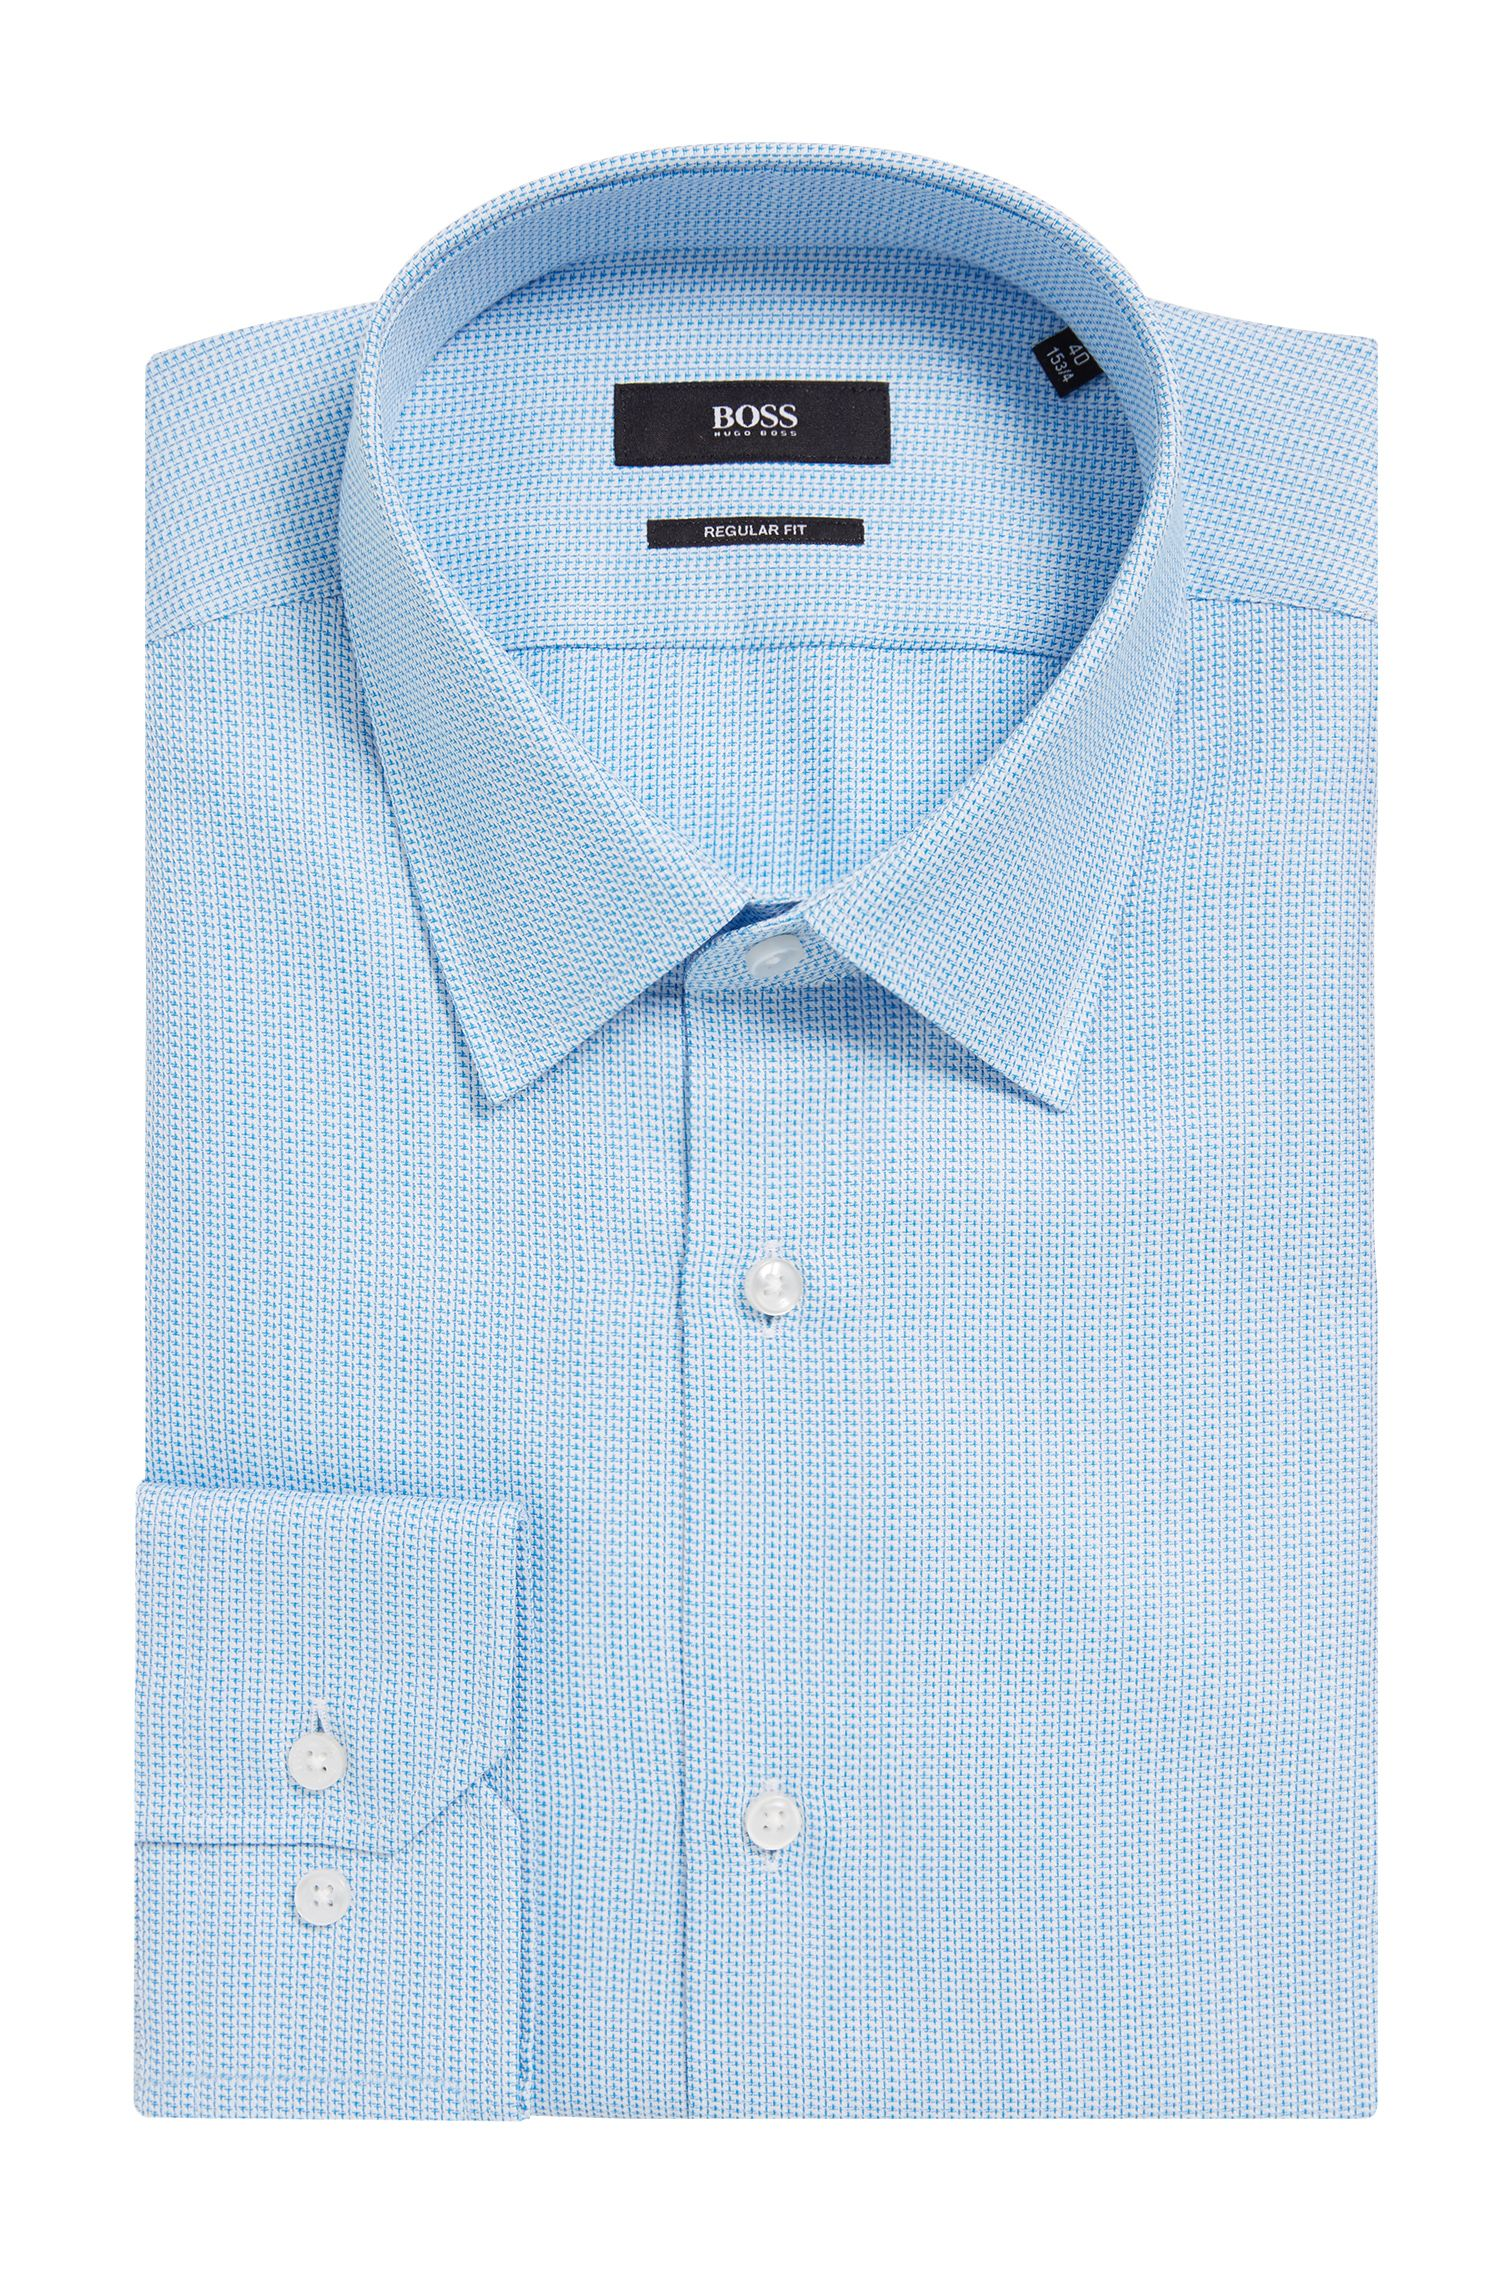 Dobby Italian Cotton Dress Shirt, Regular fit | Enzo